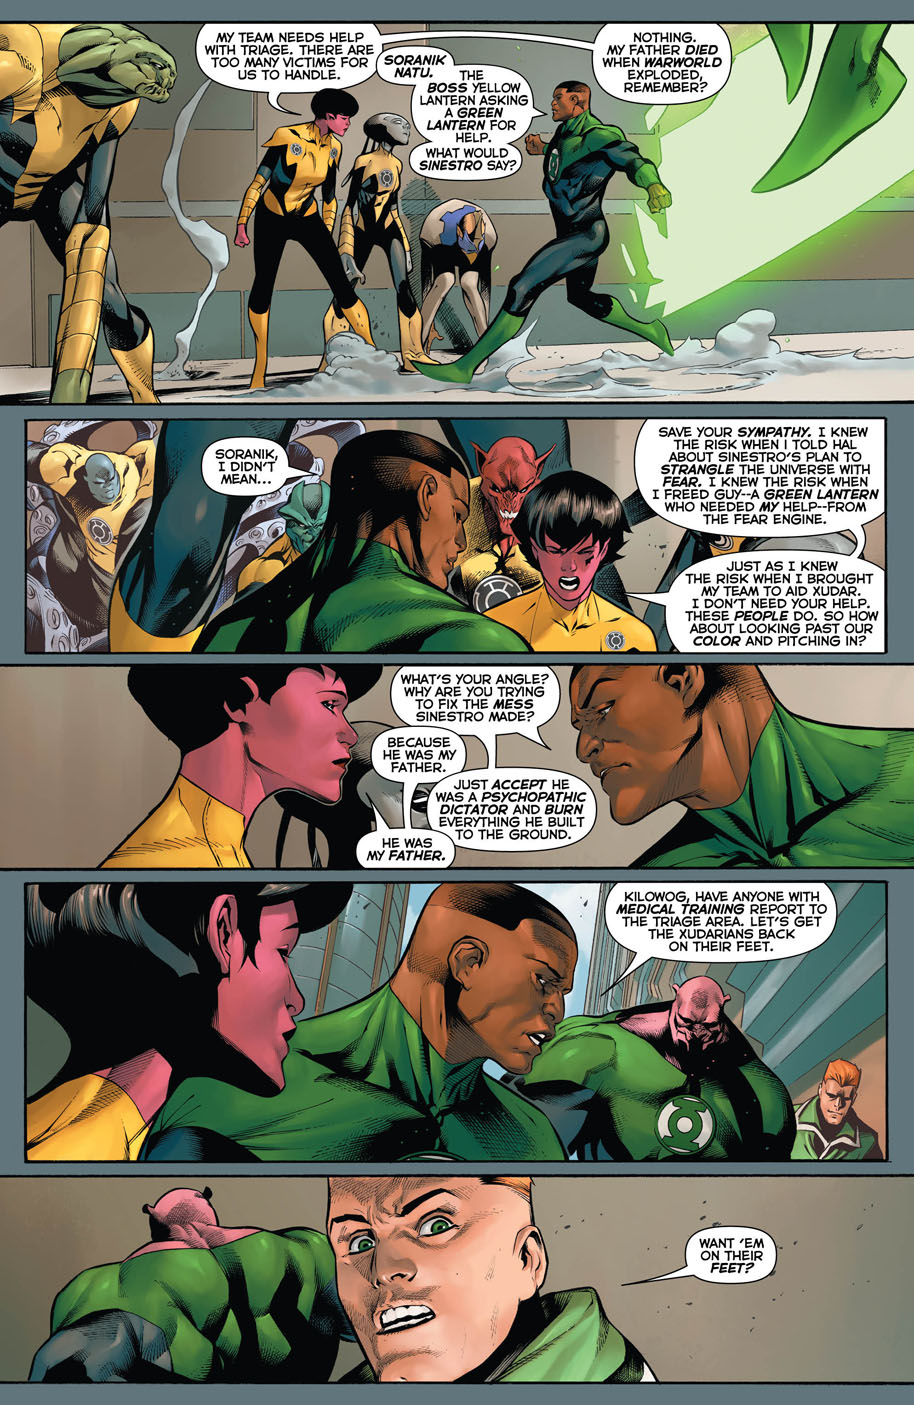 Hal Jordan and the Green Lantern Corps 9 page 5